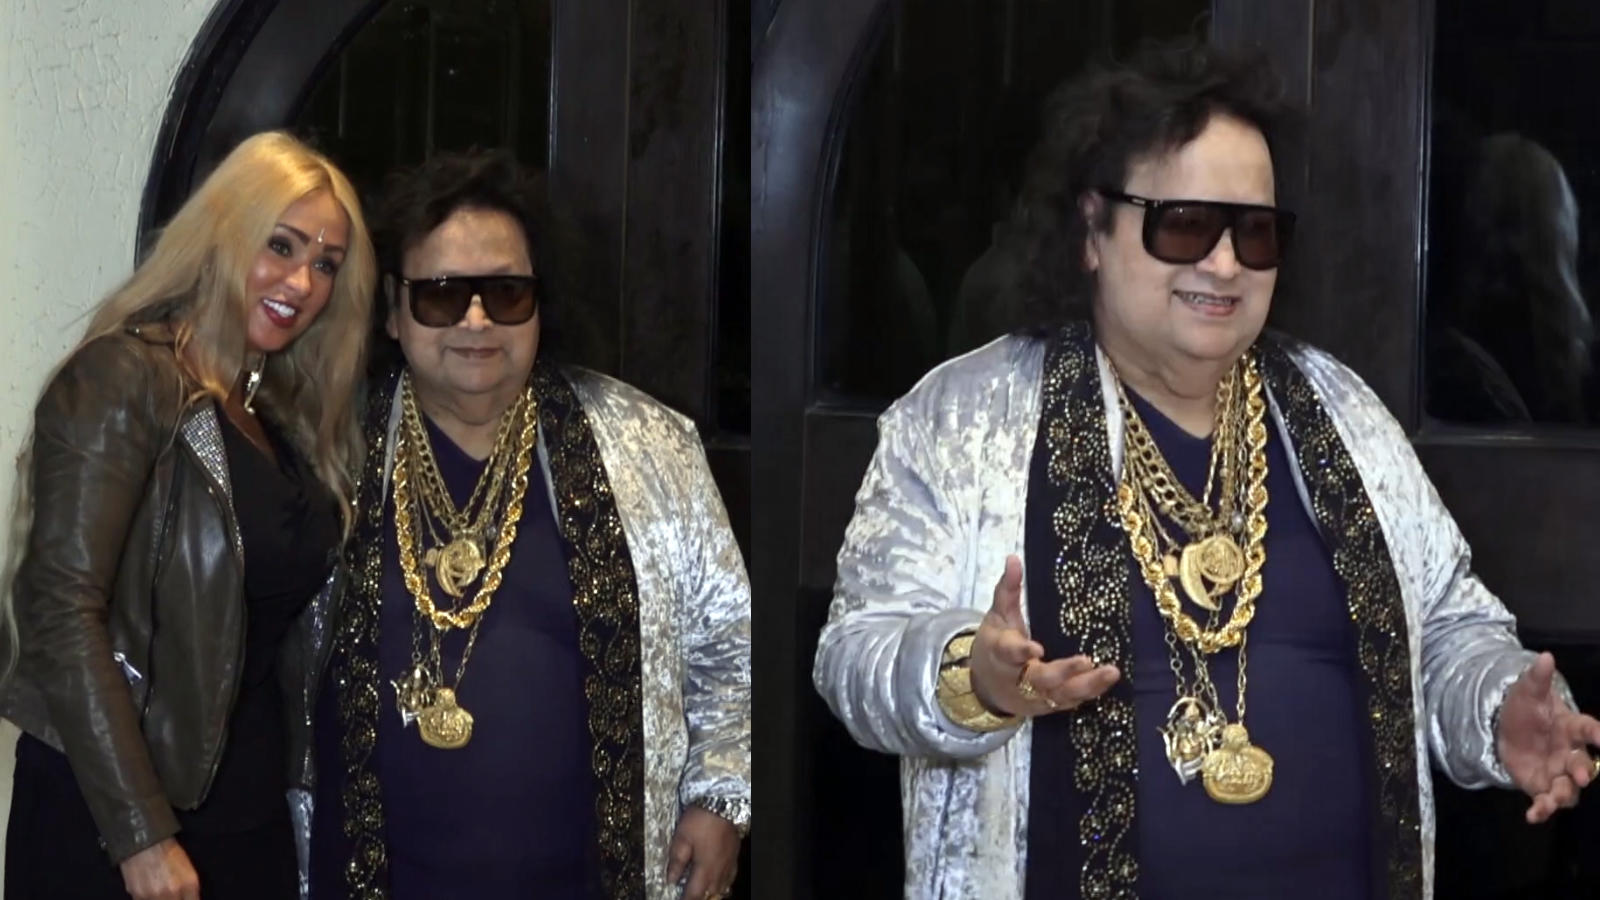 bappi-lahiri-celebrates-golden-jubilee-year-in-indian-music-industry-hindi-movie-news-bollywood-times-of-india